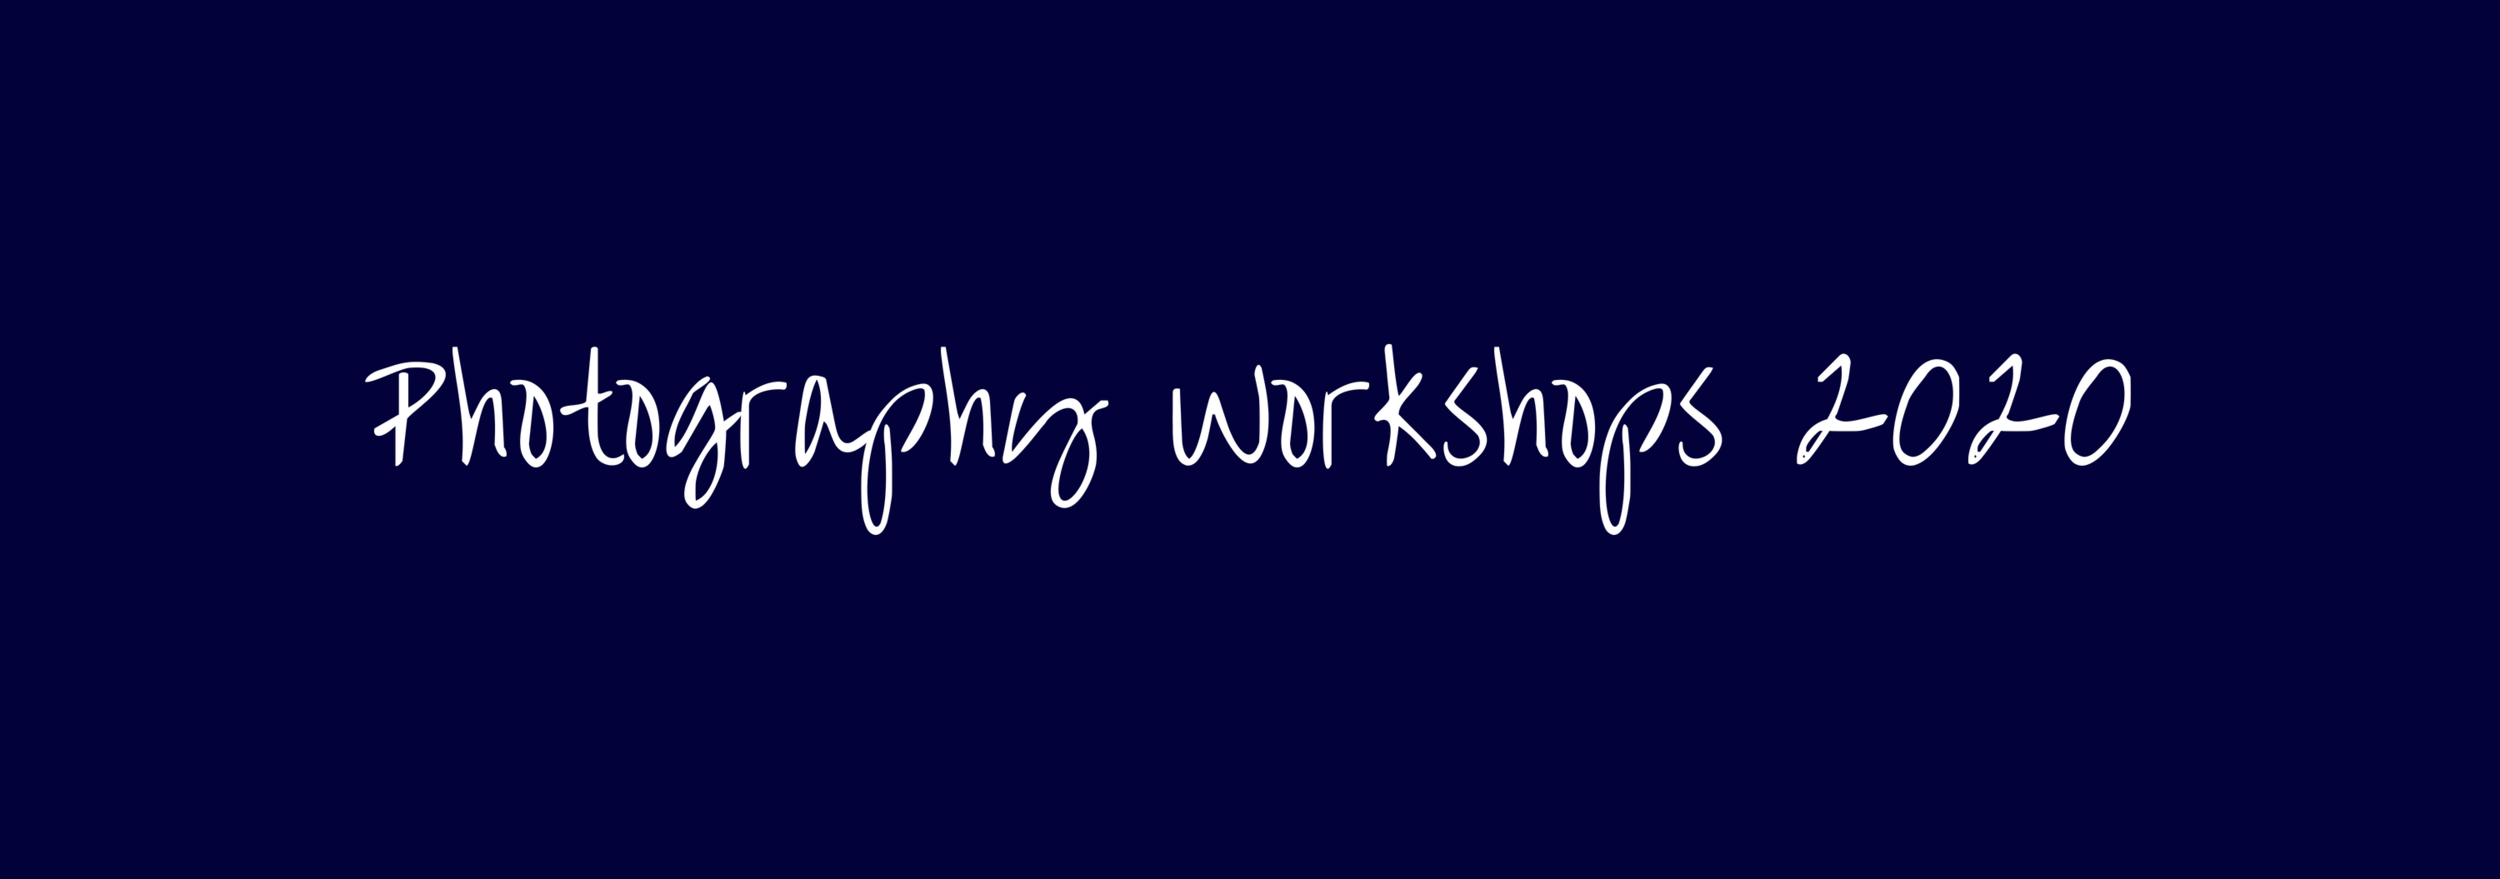 photography workshops 2020